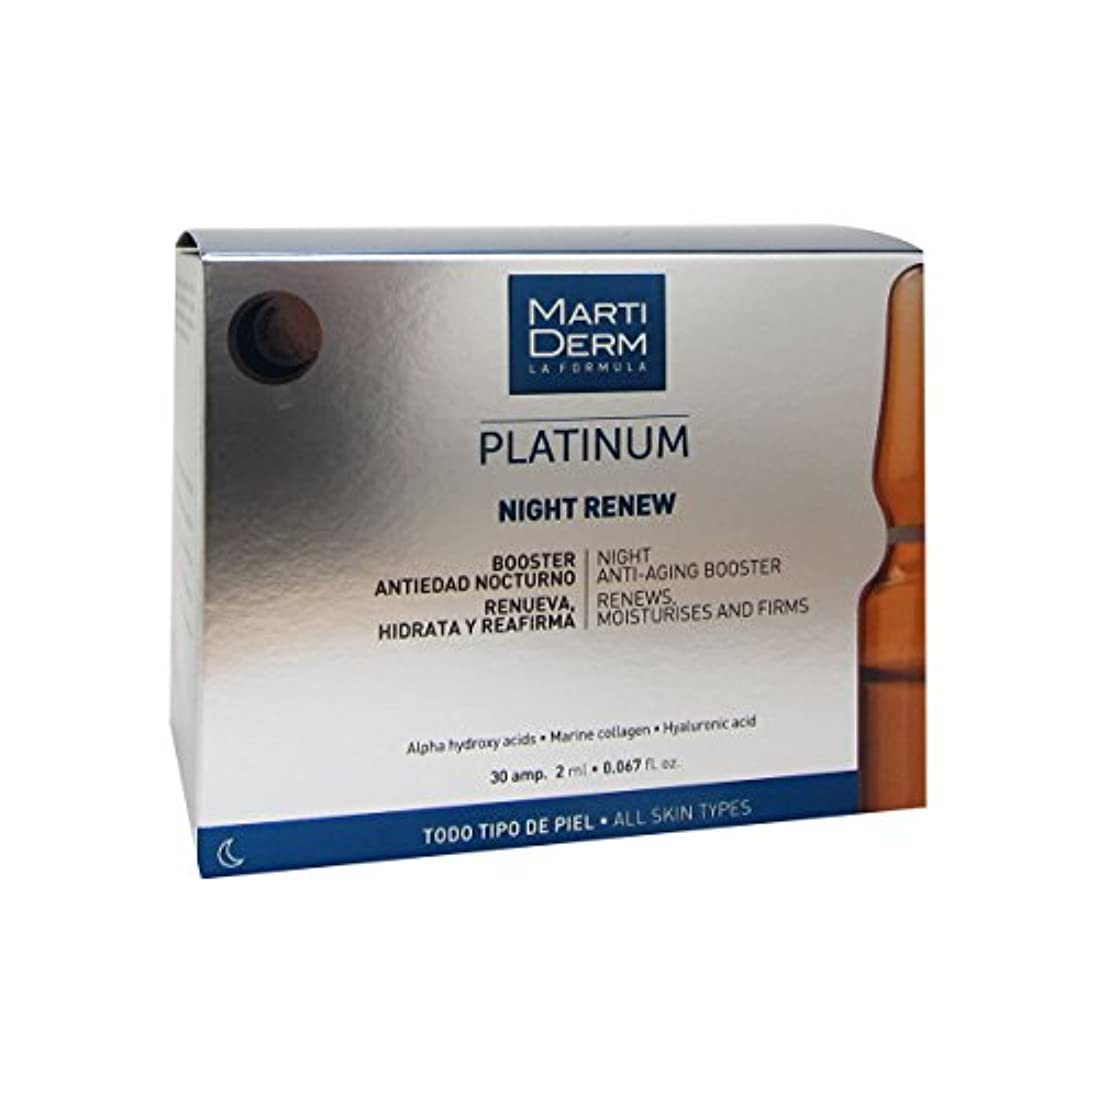 カメラ振るうクーポンMartiderm Platinum Night Renew Ampoules 30ampx2ml [並行輸入品]